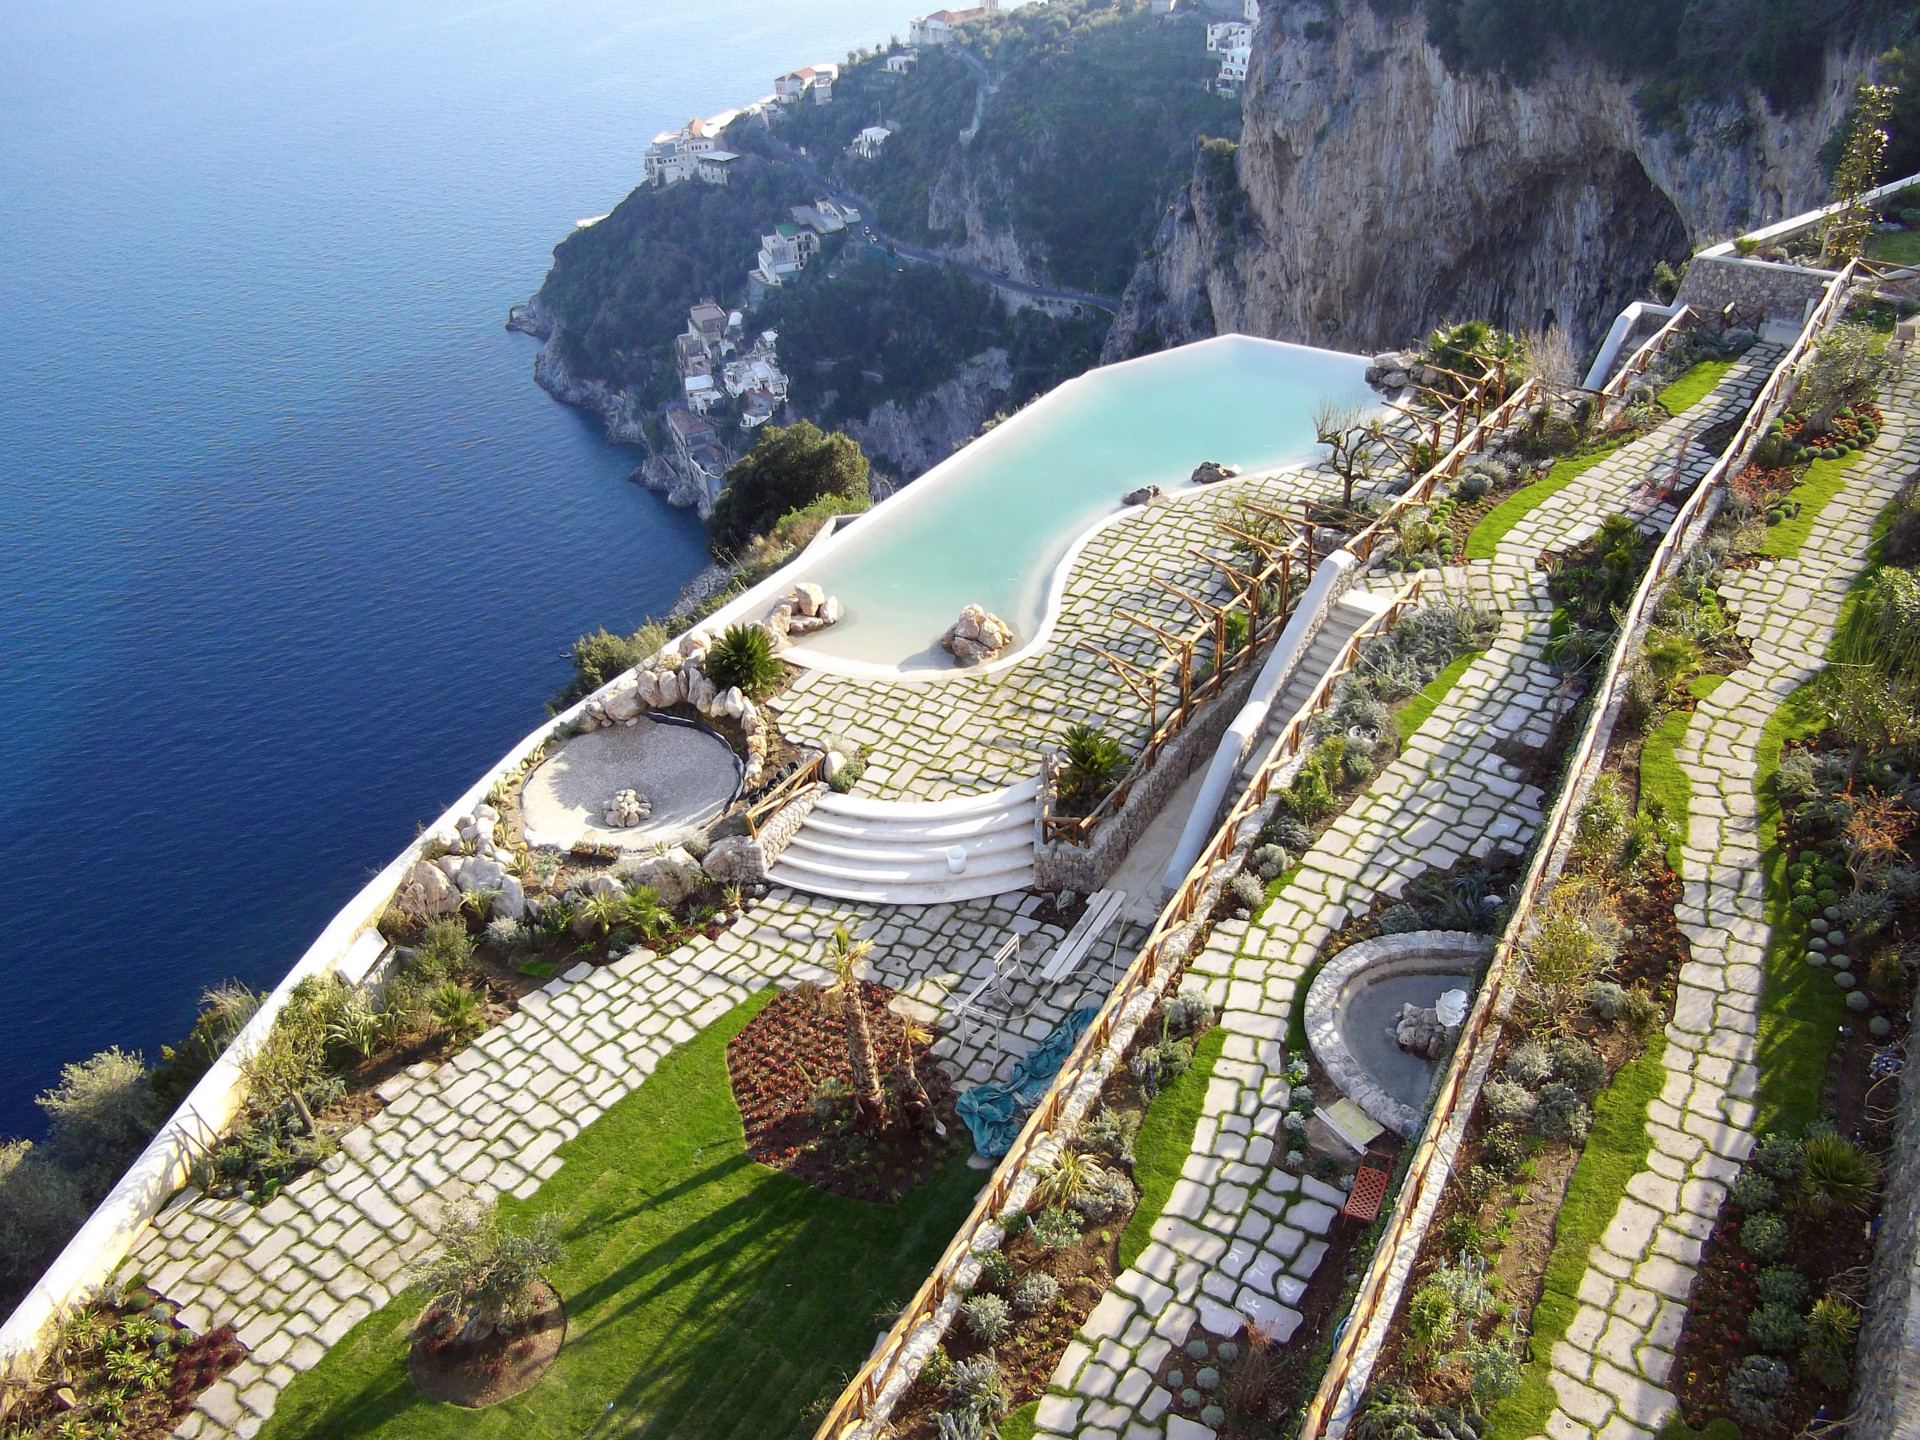 The  Monastero Santa Rosa Hotel & Spa  is located between Positano and Amalfi is a historic Monastery fully transformed into a boutique hotel.